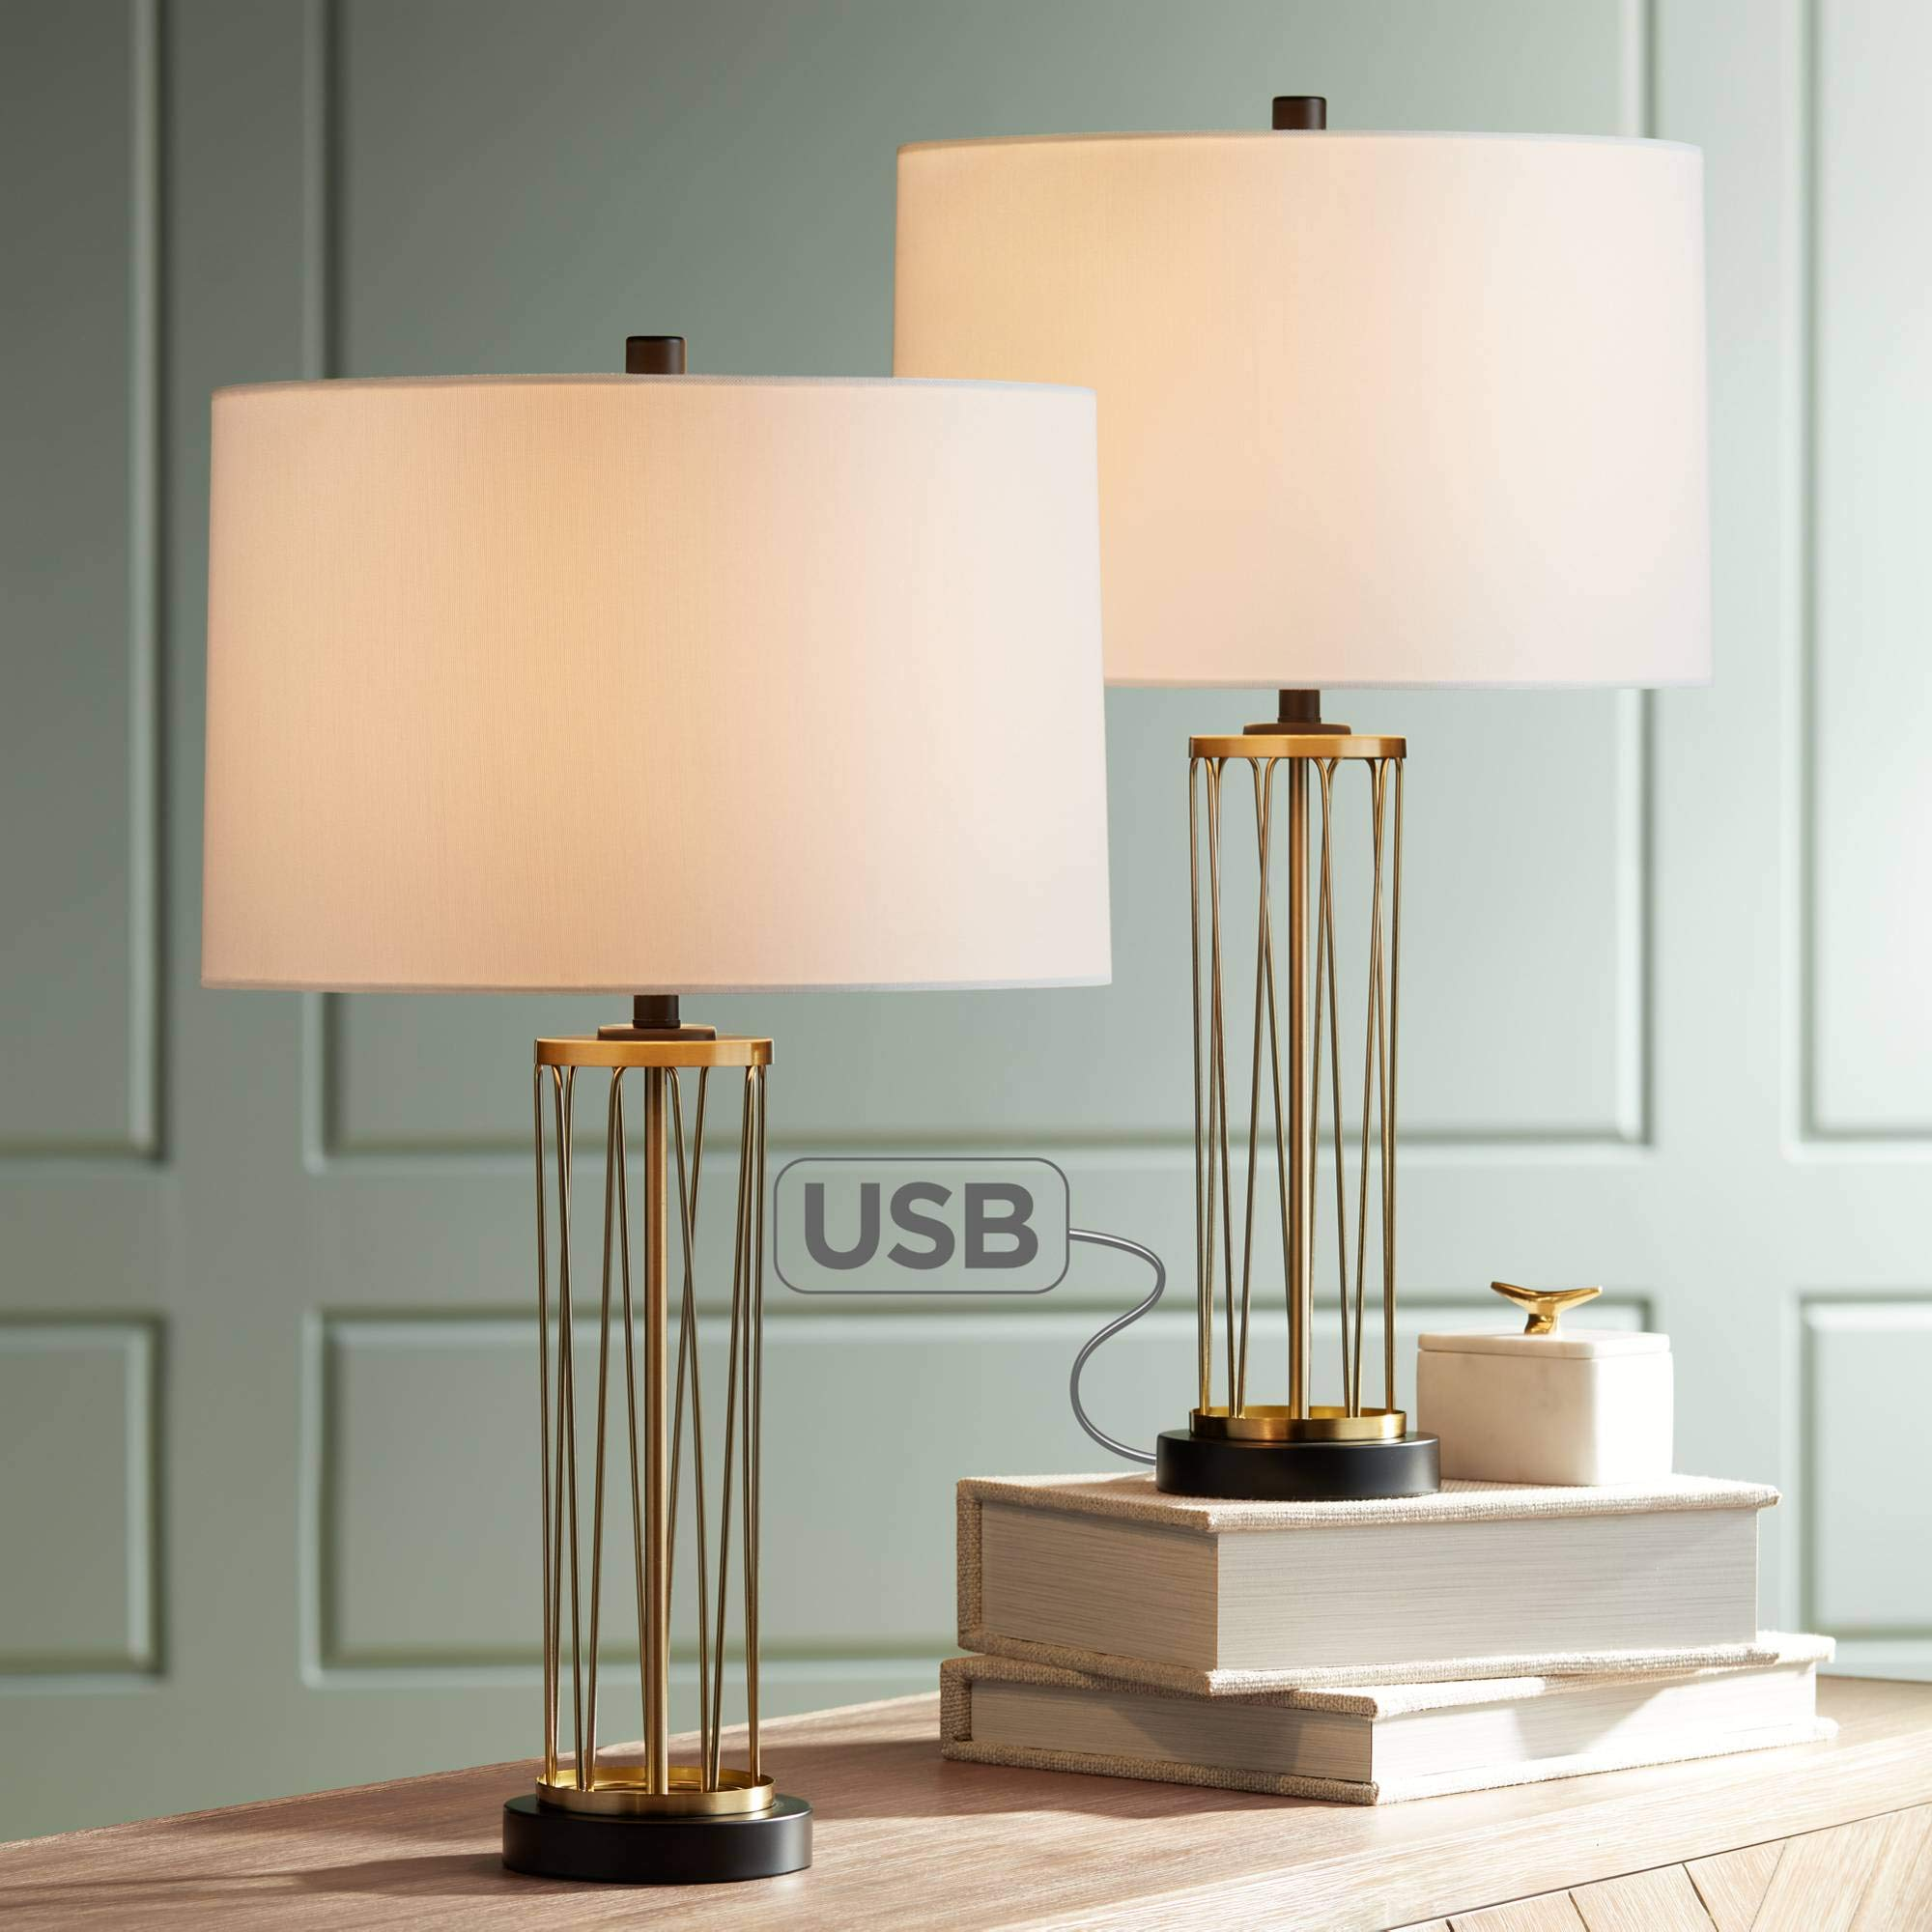 Nathan Modern Table Lamps Set of 2 with Hotel Style USB Charging Port Gold Metal Drum Shade for Living Room Family Bedroom Bedside - 360 Lighting